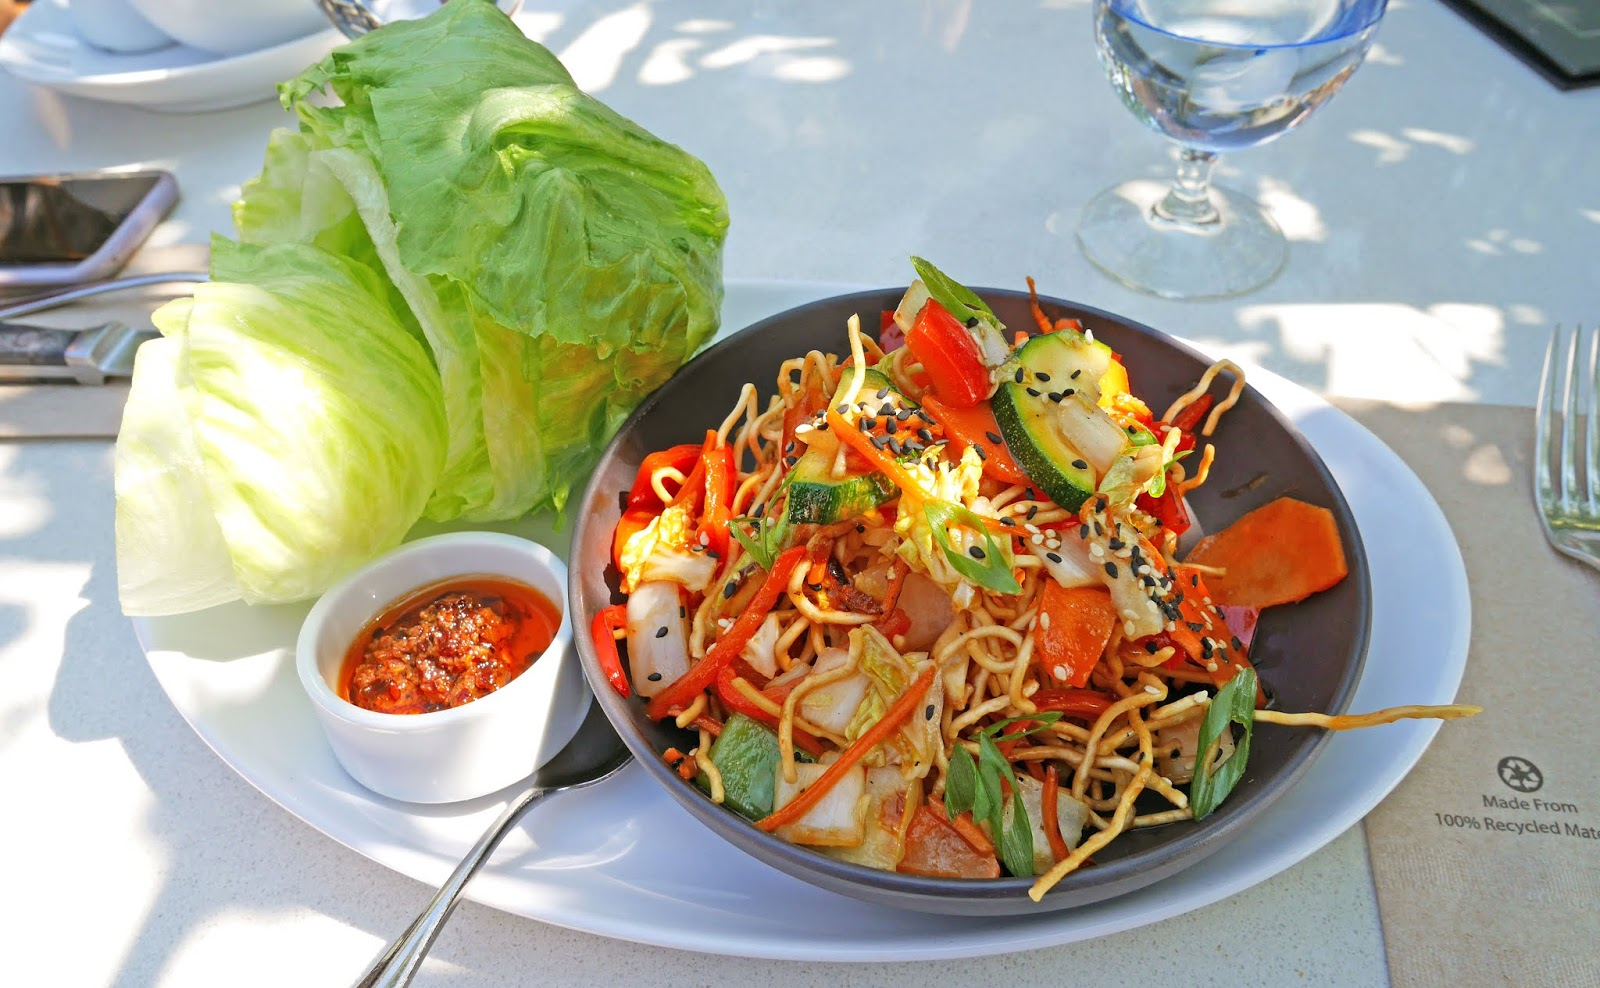 Thai lettuce wraps for lunch at the Joey Barlow restaurant in Calgary, Alberta